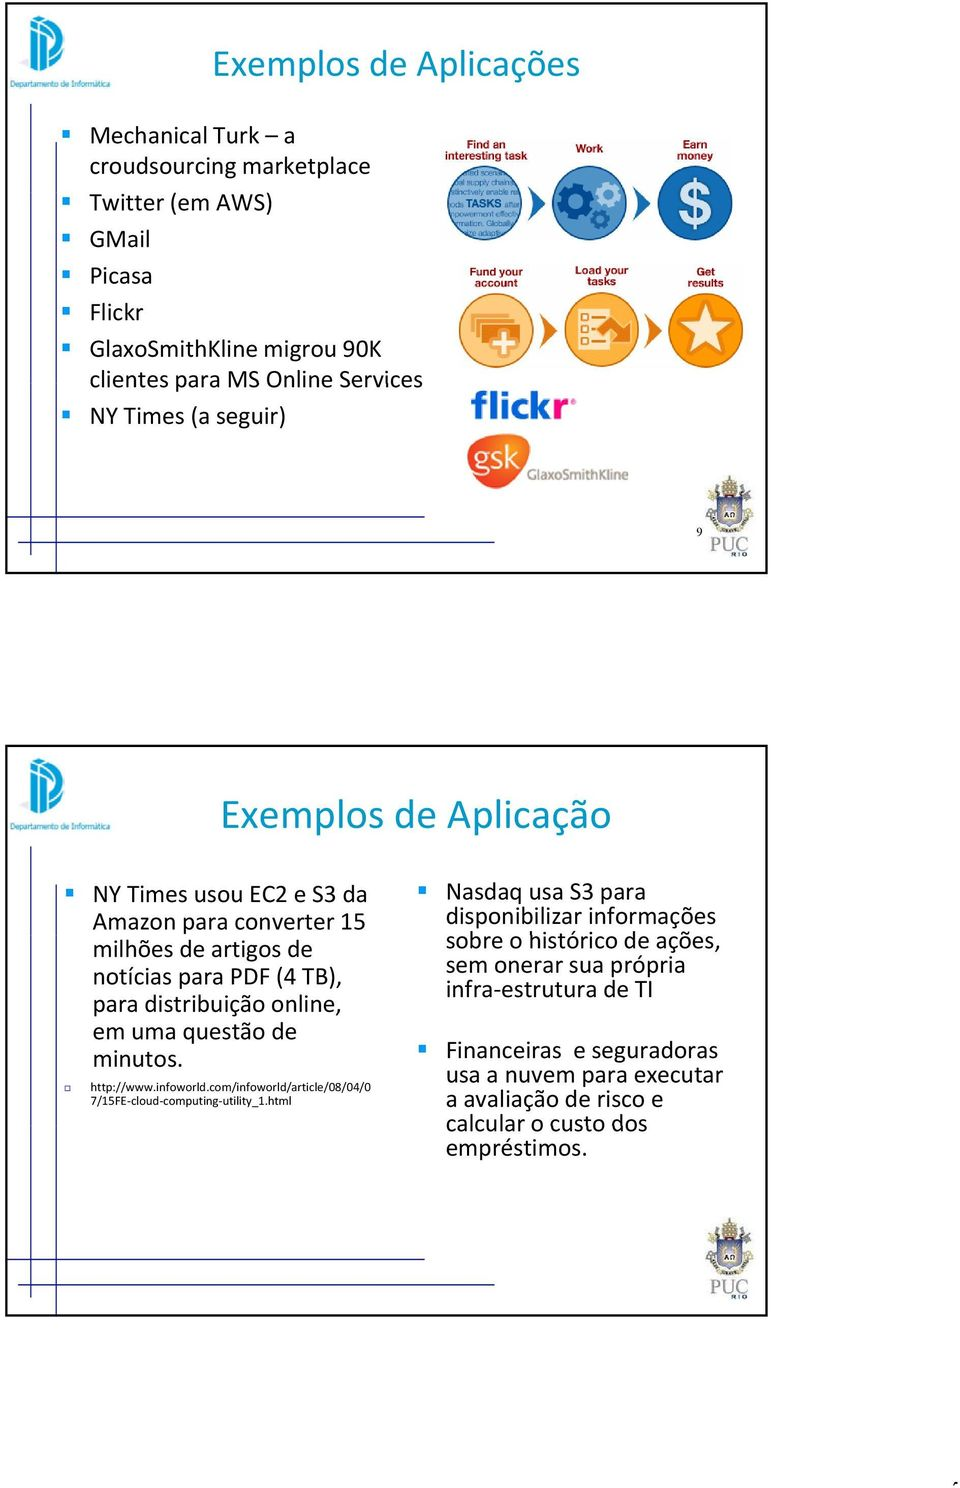 uma questão de minutos. http://www.infoworld.com/infoworld/article/08/04/0 7/15FE cloud computing utility_1.